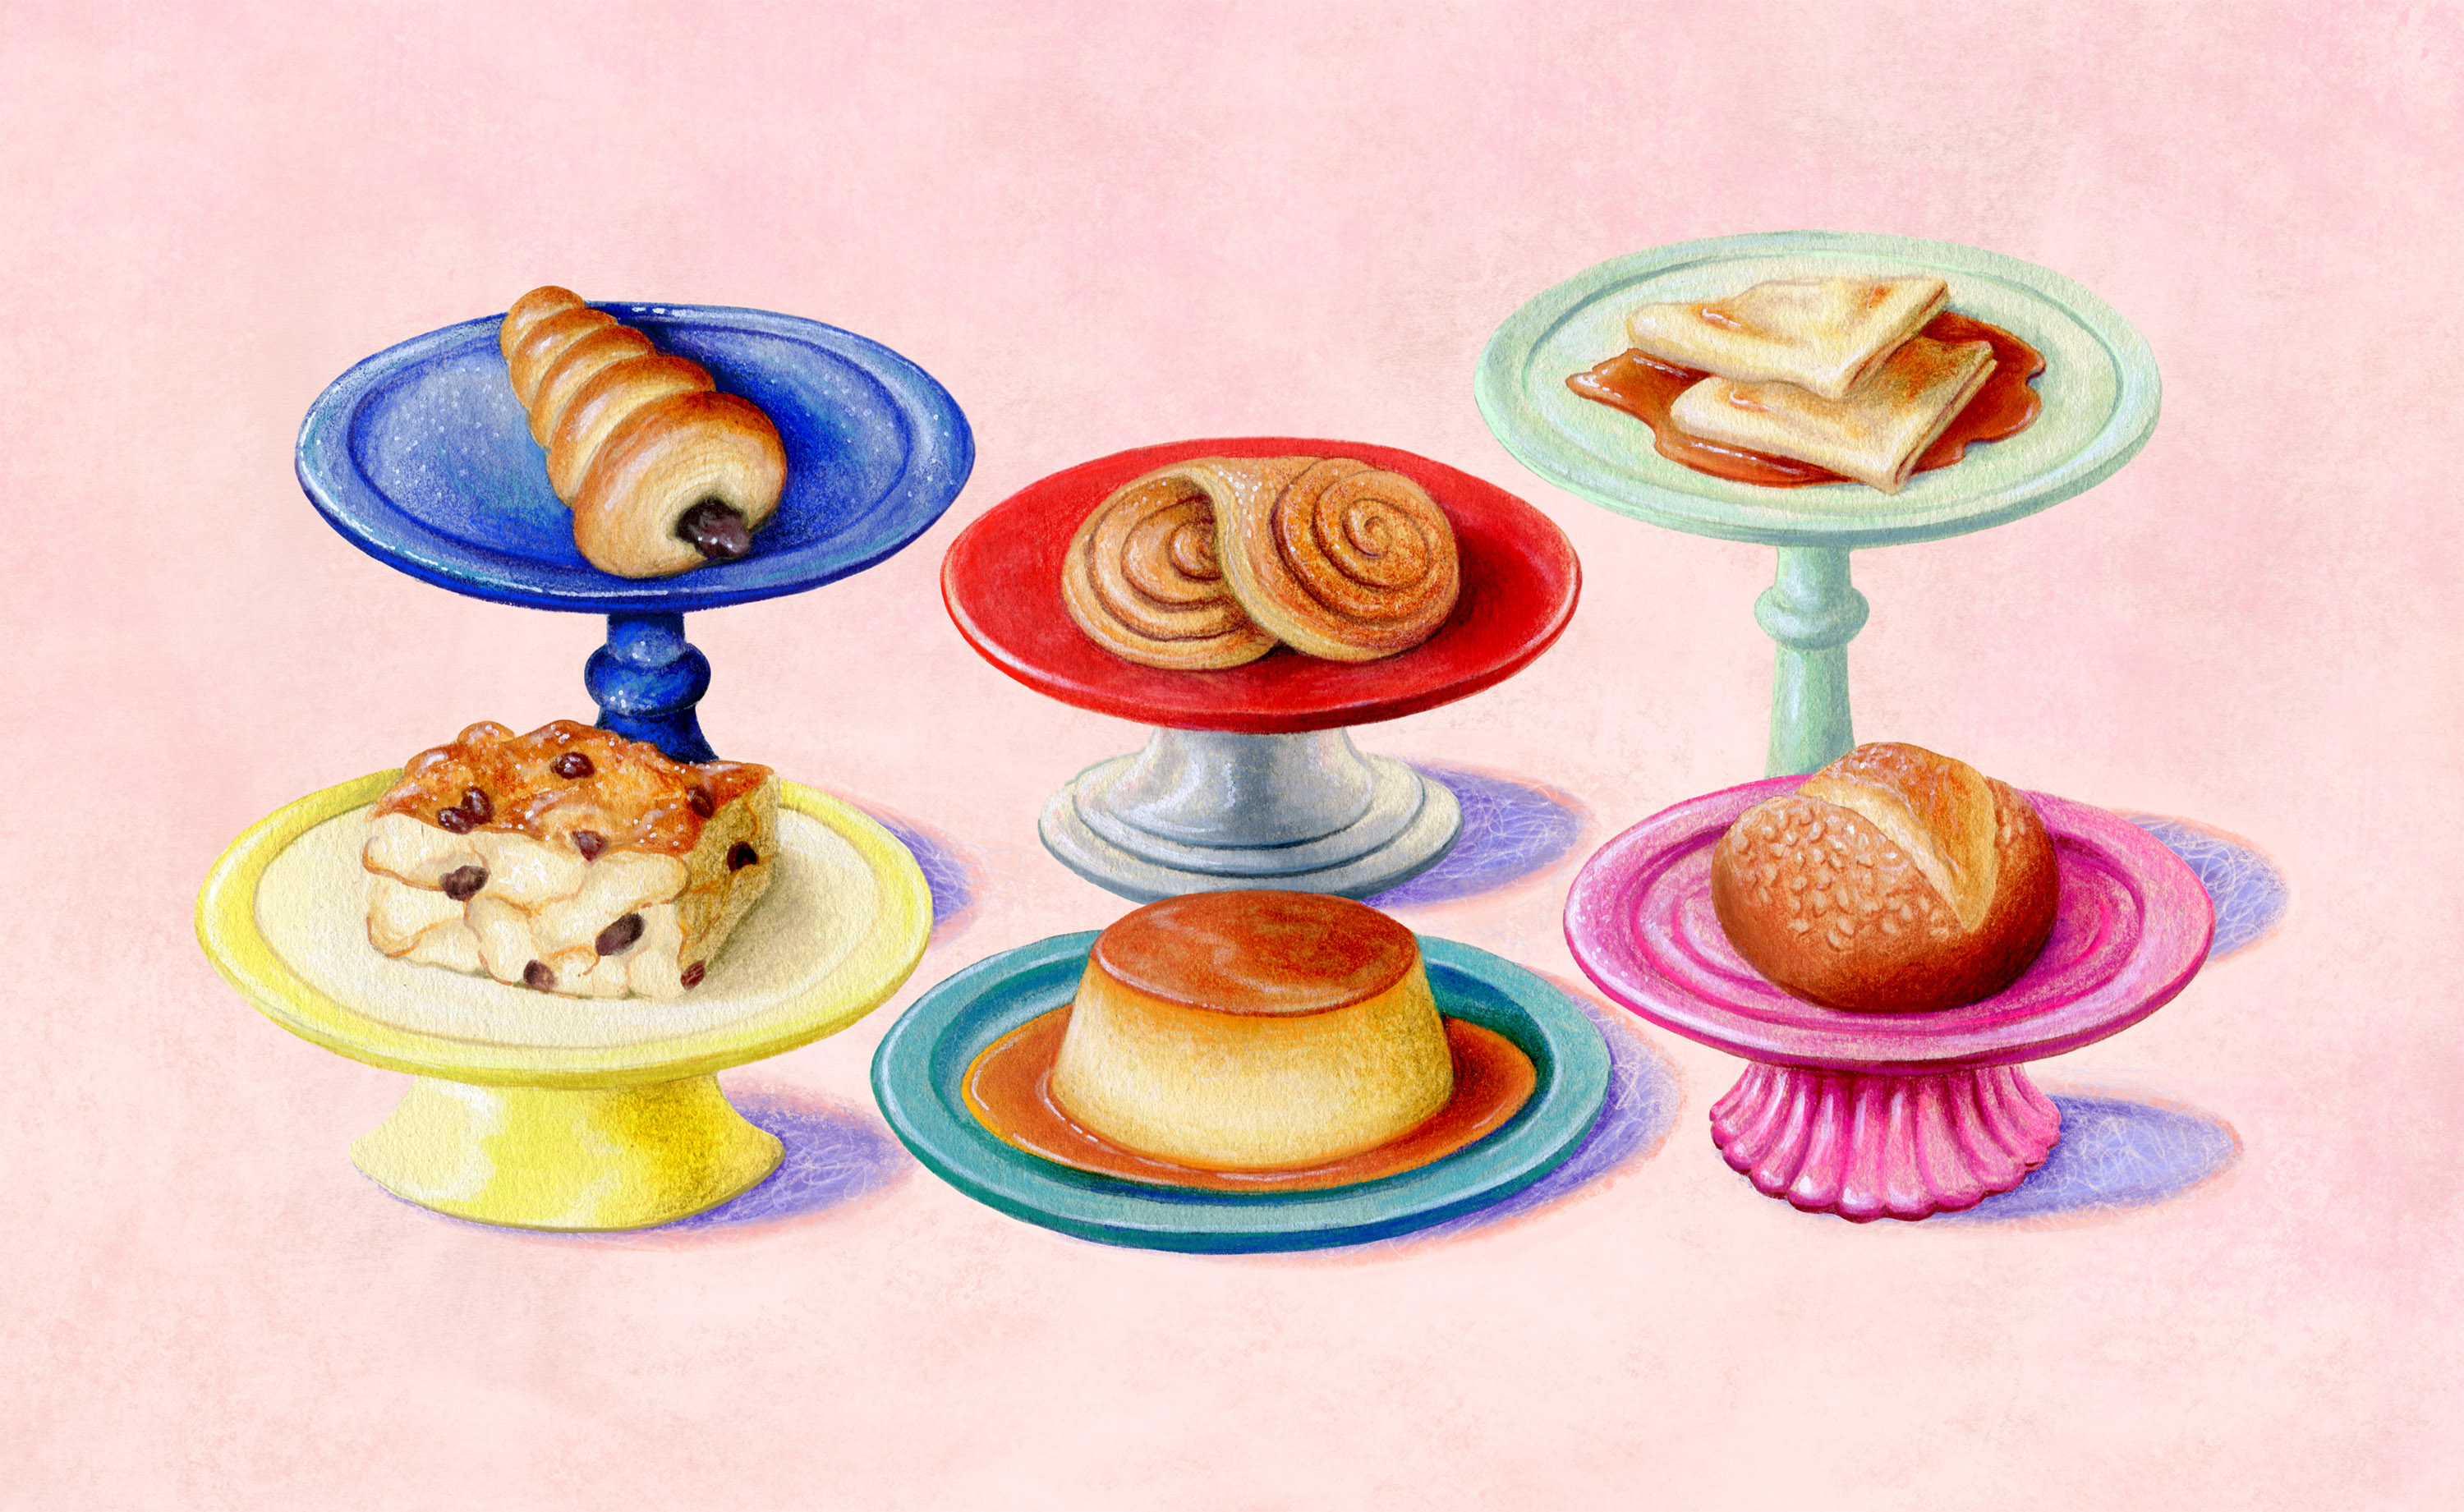 Six Mexican pastries on pedestals, illustrated